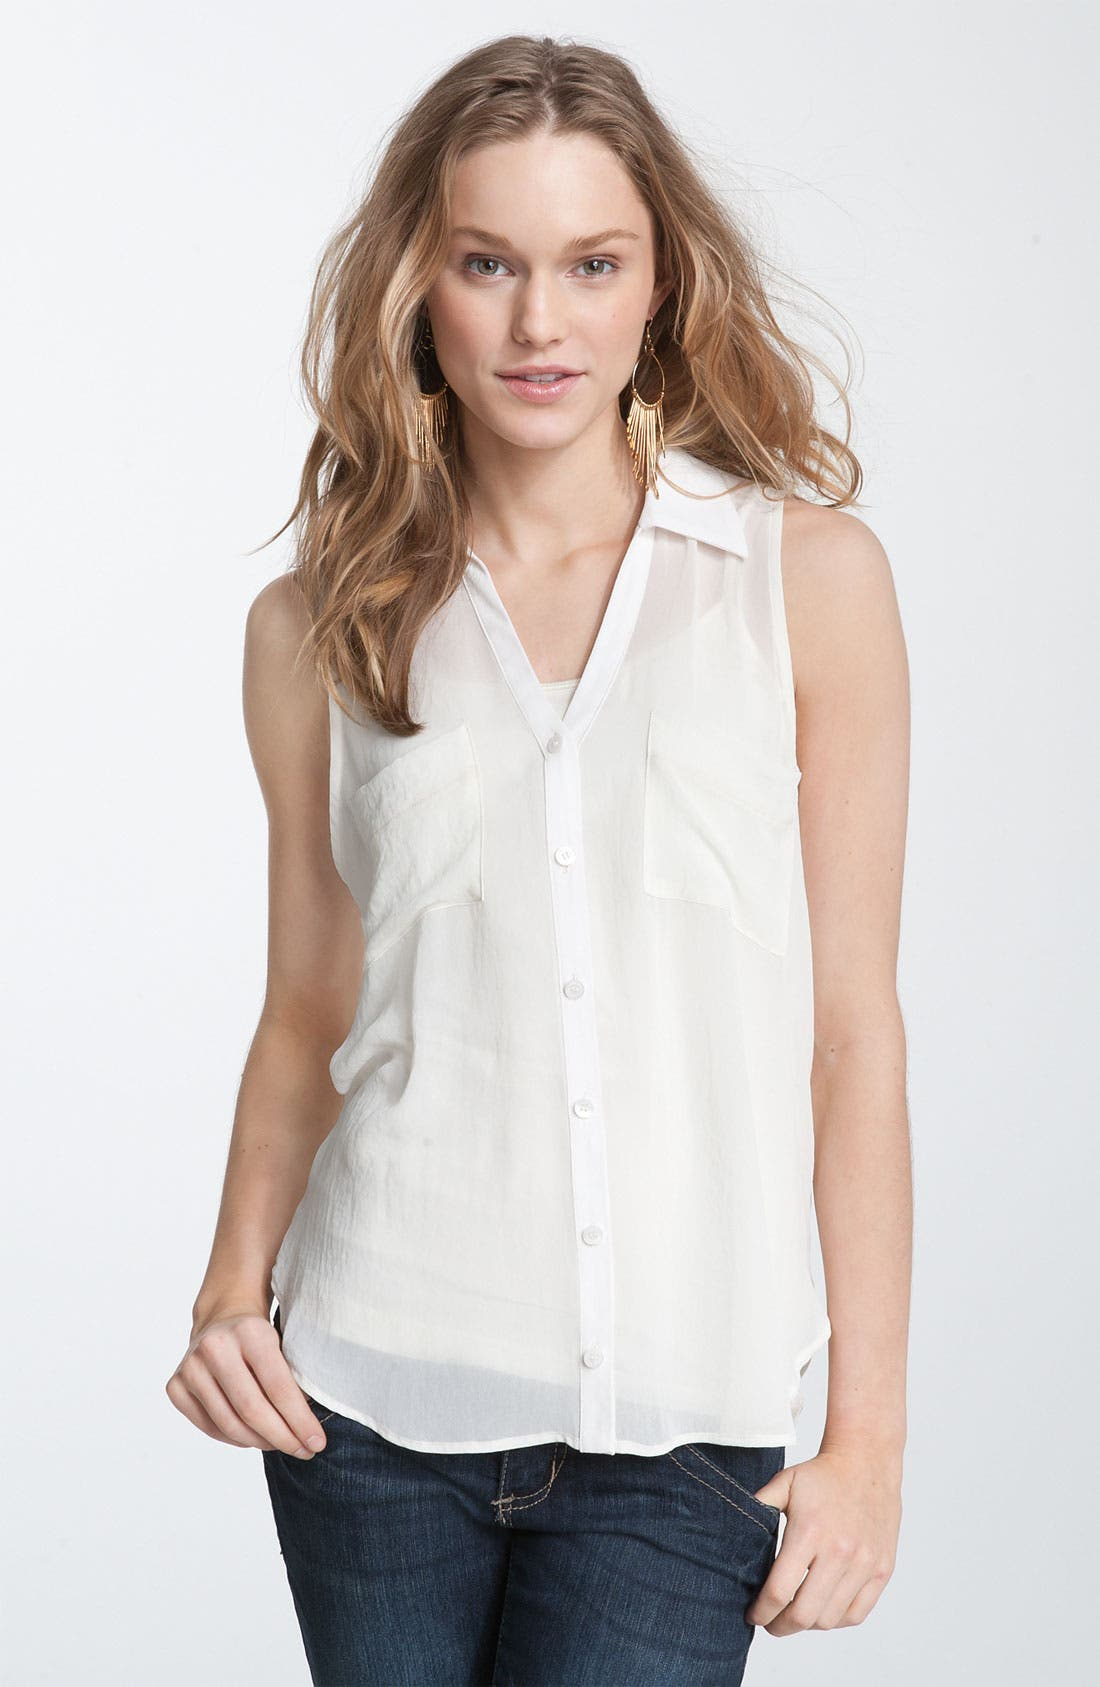 Alternate Image 1 Selected - Lush Sleeveless Chiffon Blouse (Juniors)